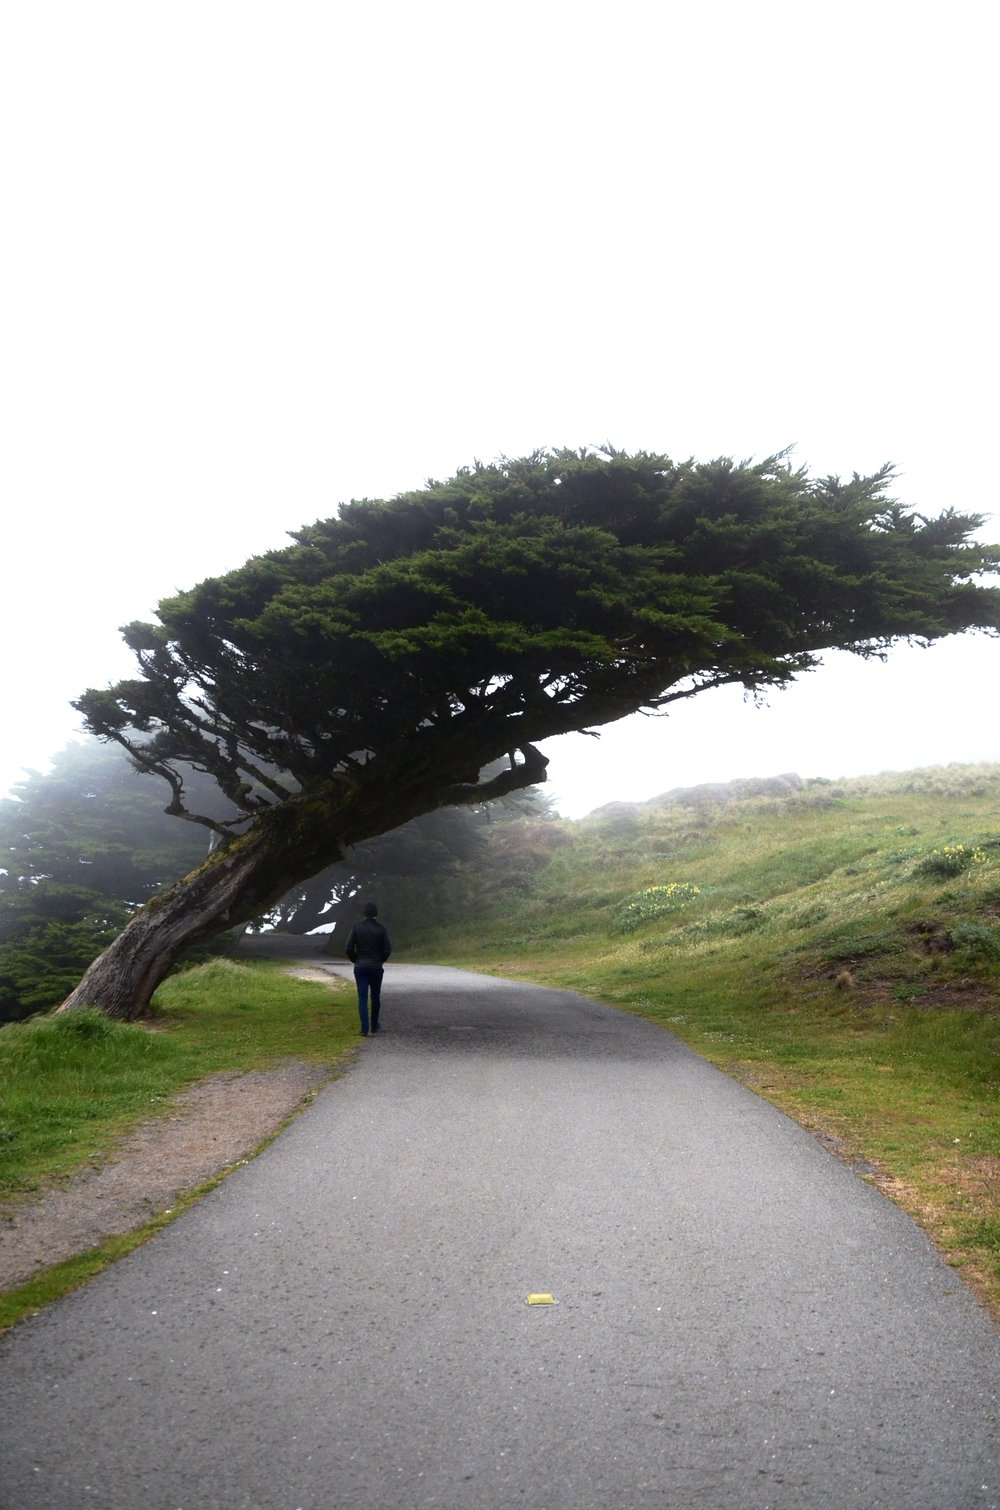 Paul walking near the coolest tree